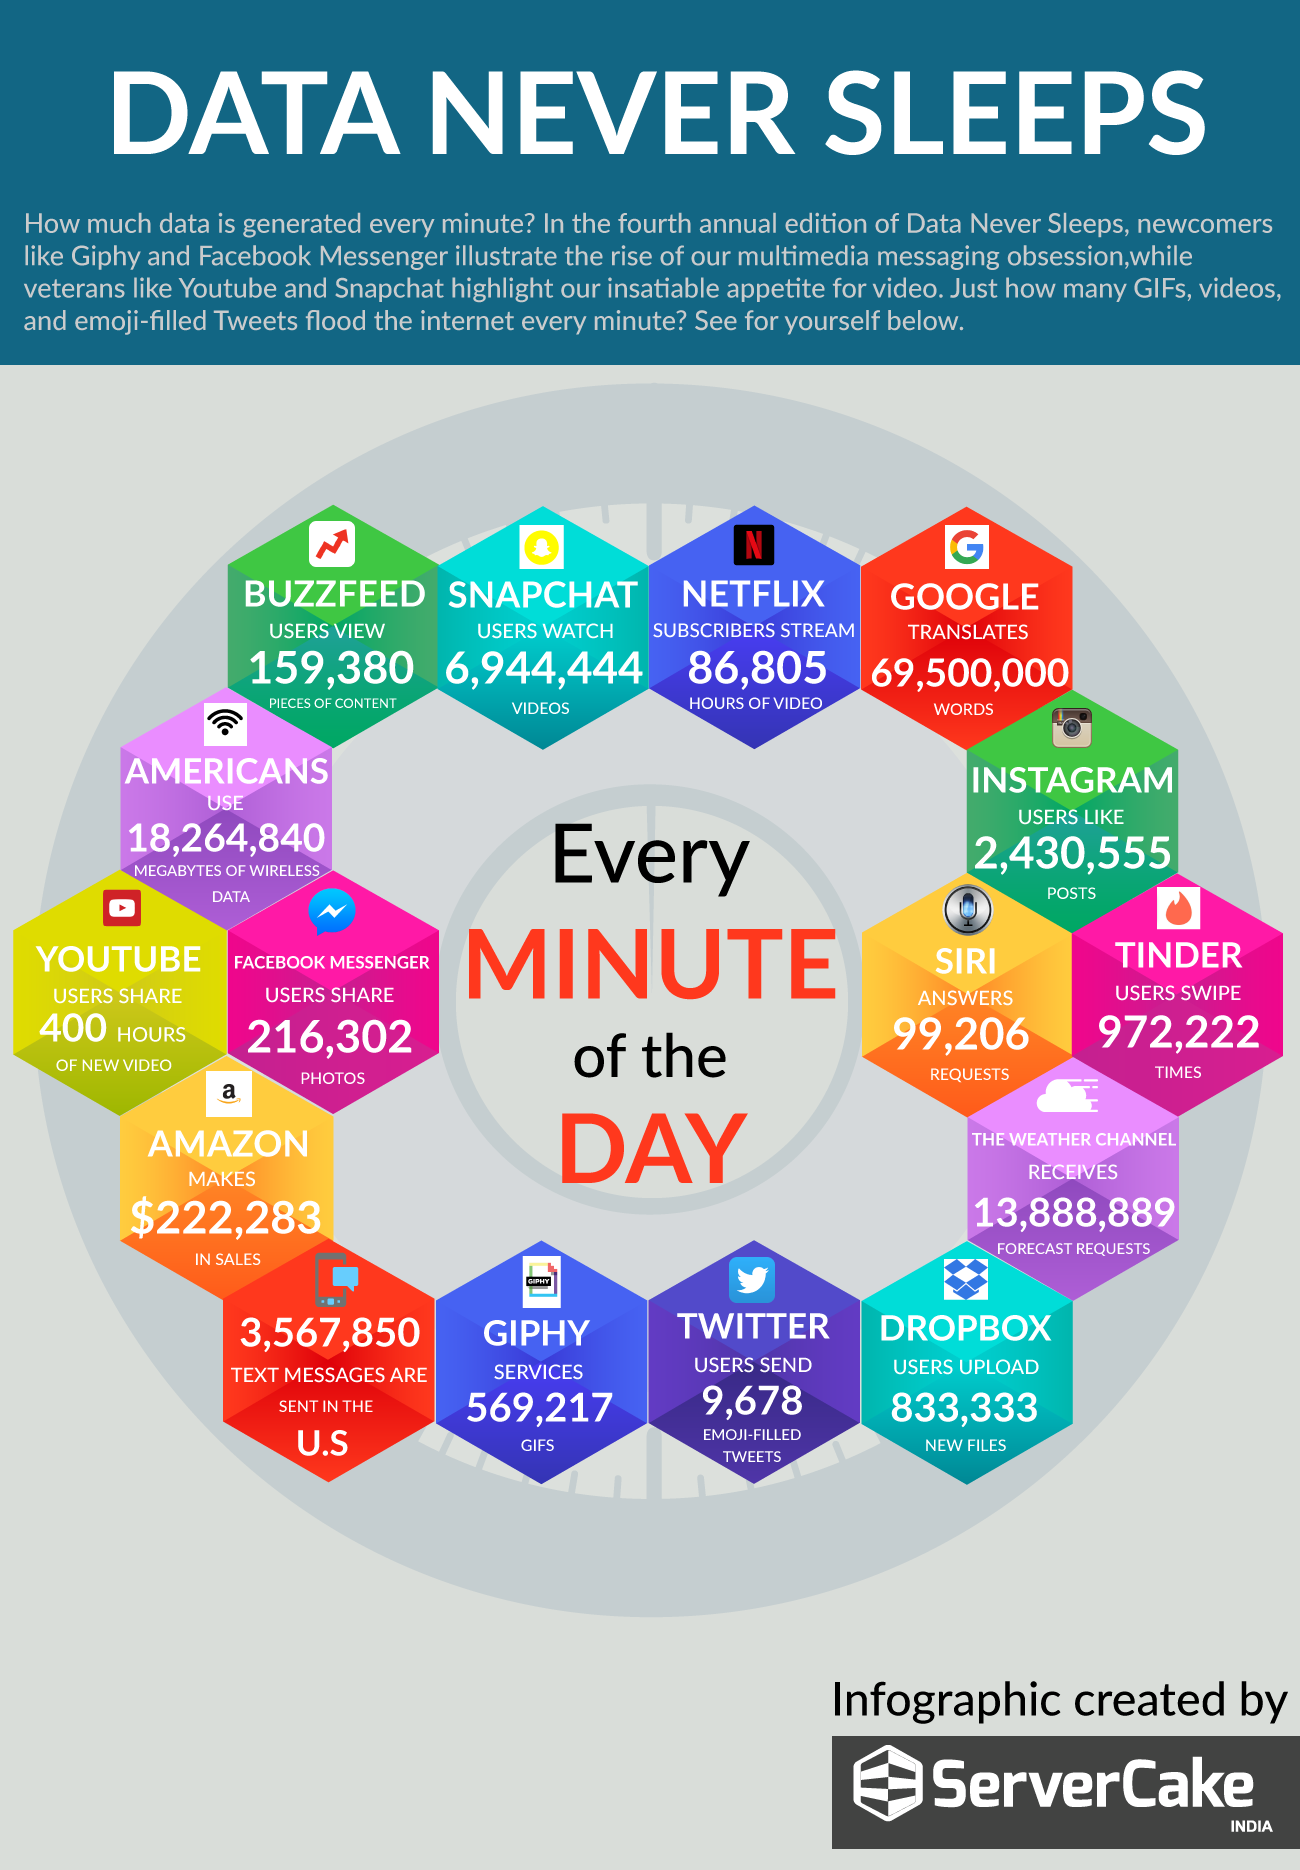 Data Generated in Internet Every Minute.